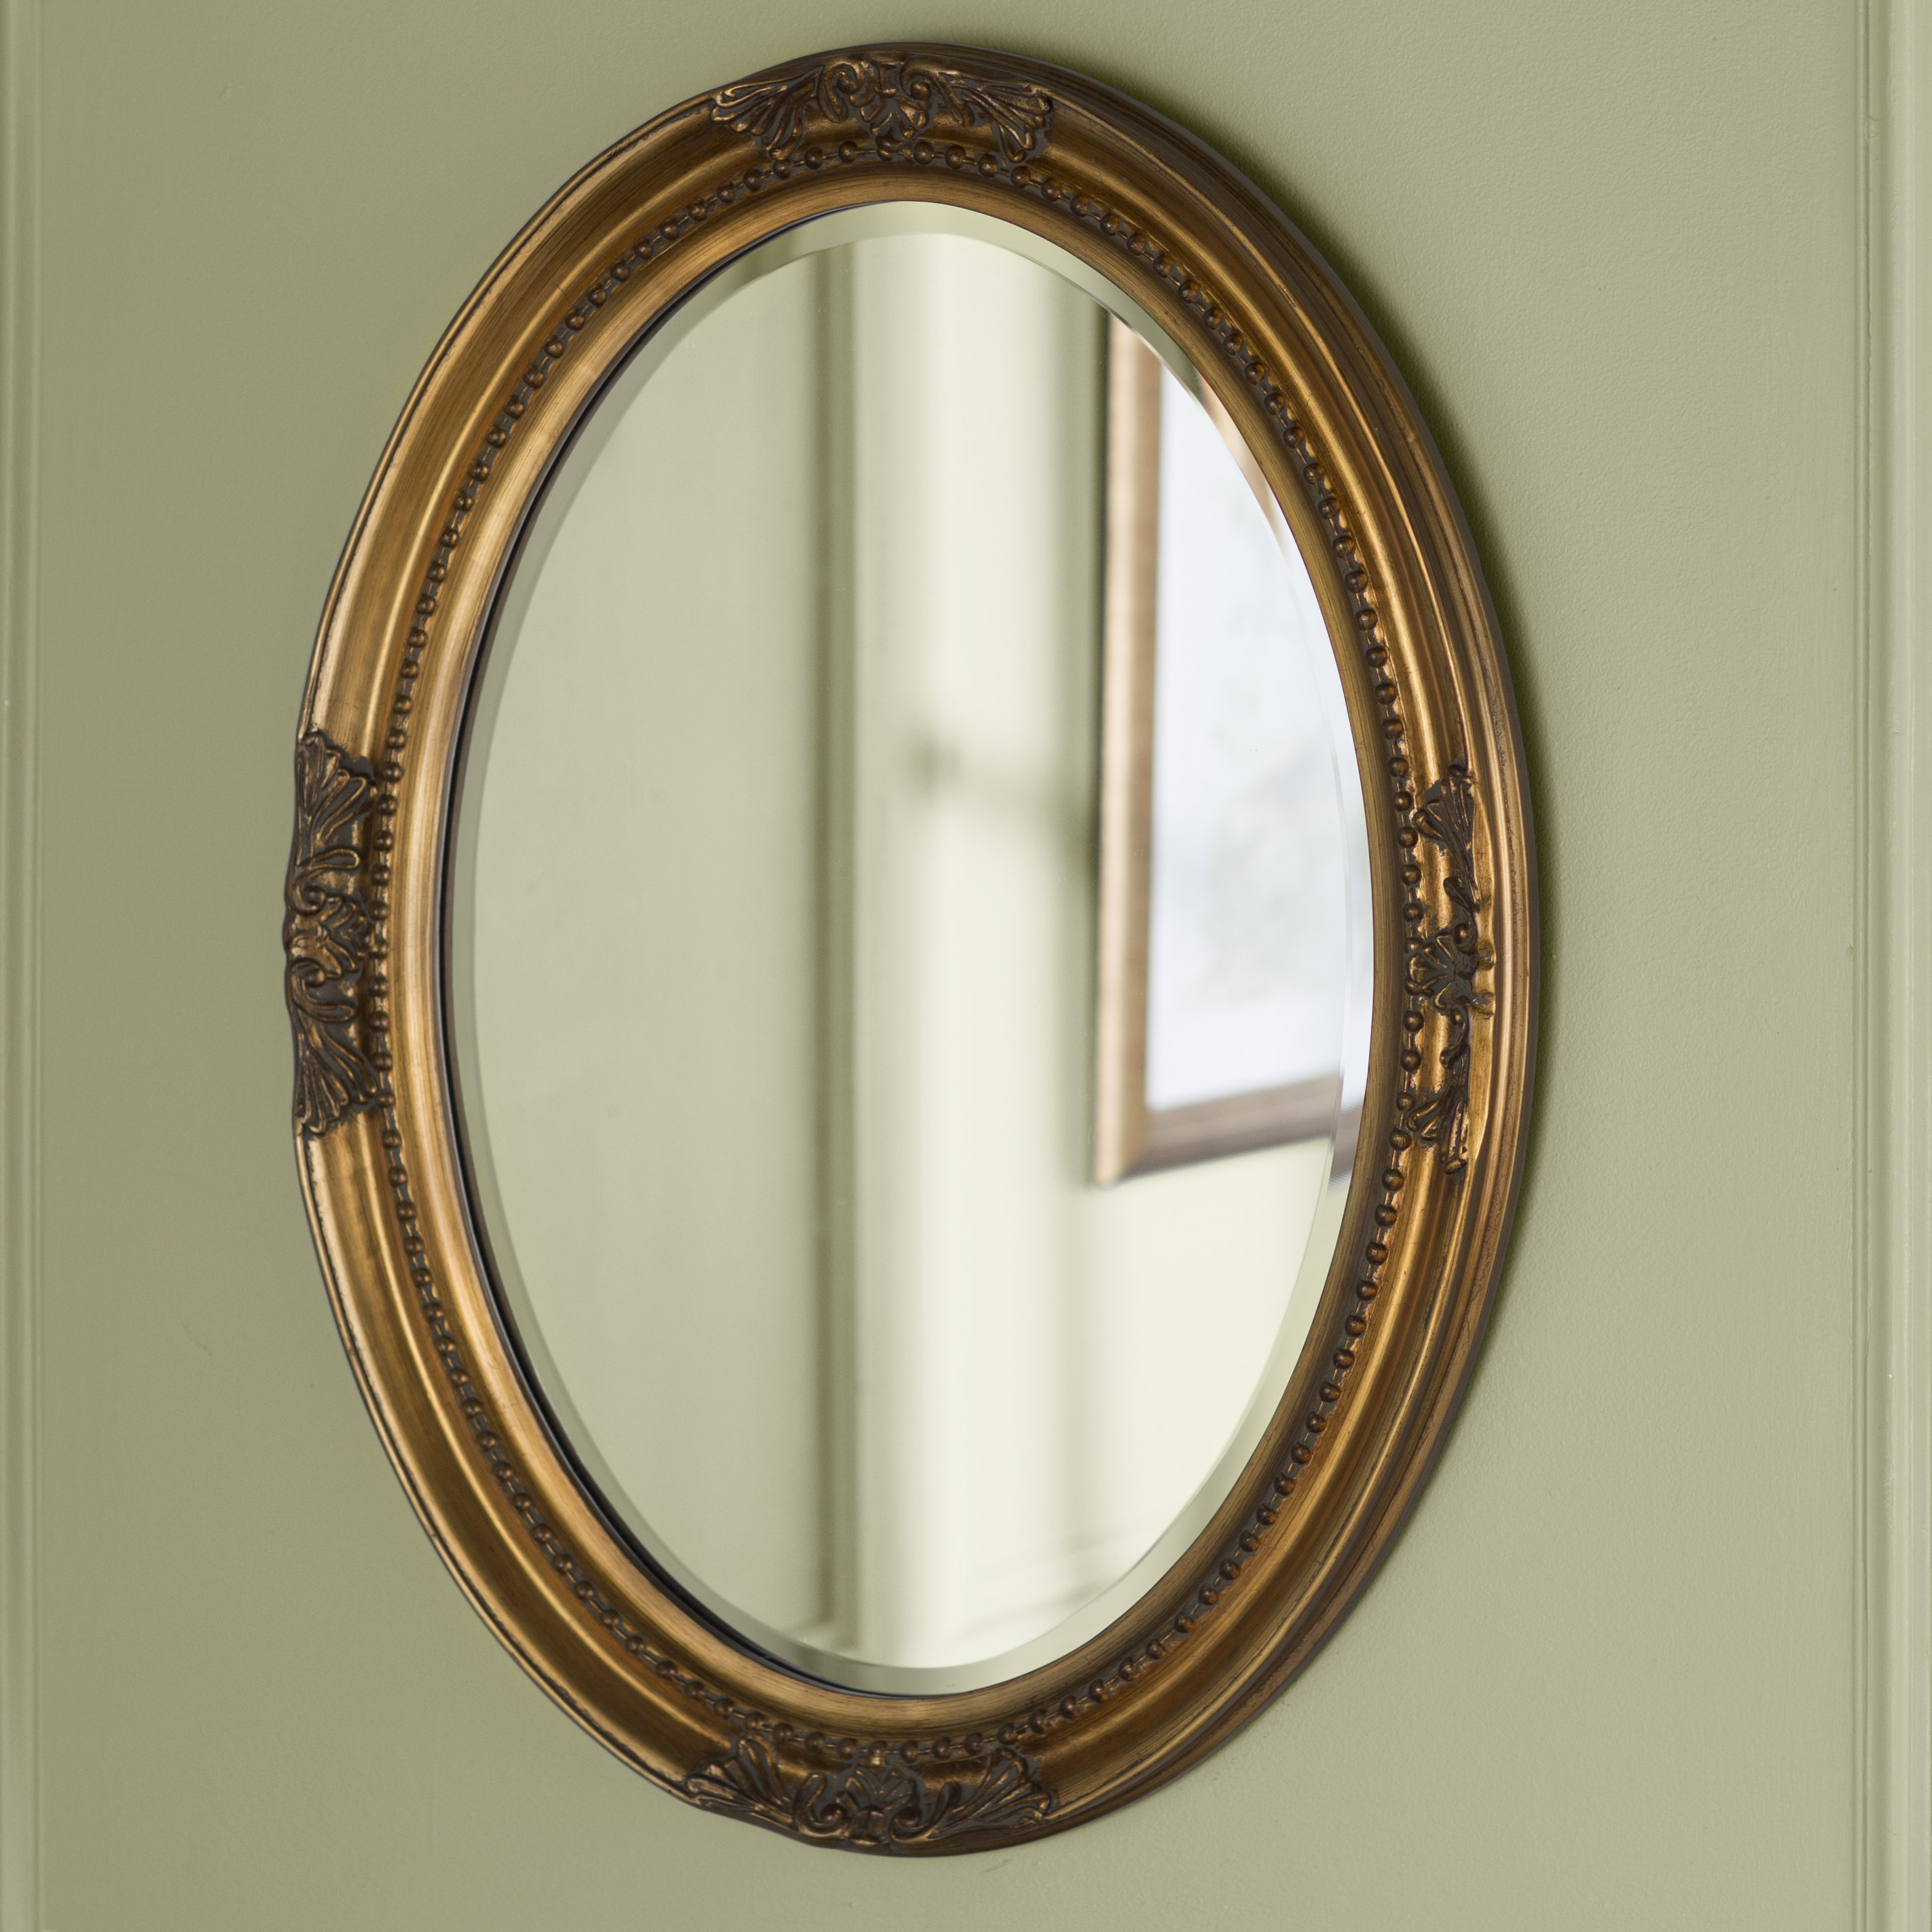 Lark Manor Oval Wood Wall Mirror & Reviews | Wayfair Within Pfister Oval Wood Wall Mirrors (Image 8 of 20)